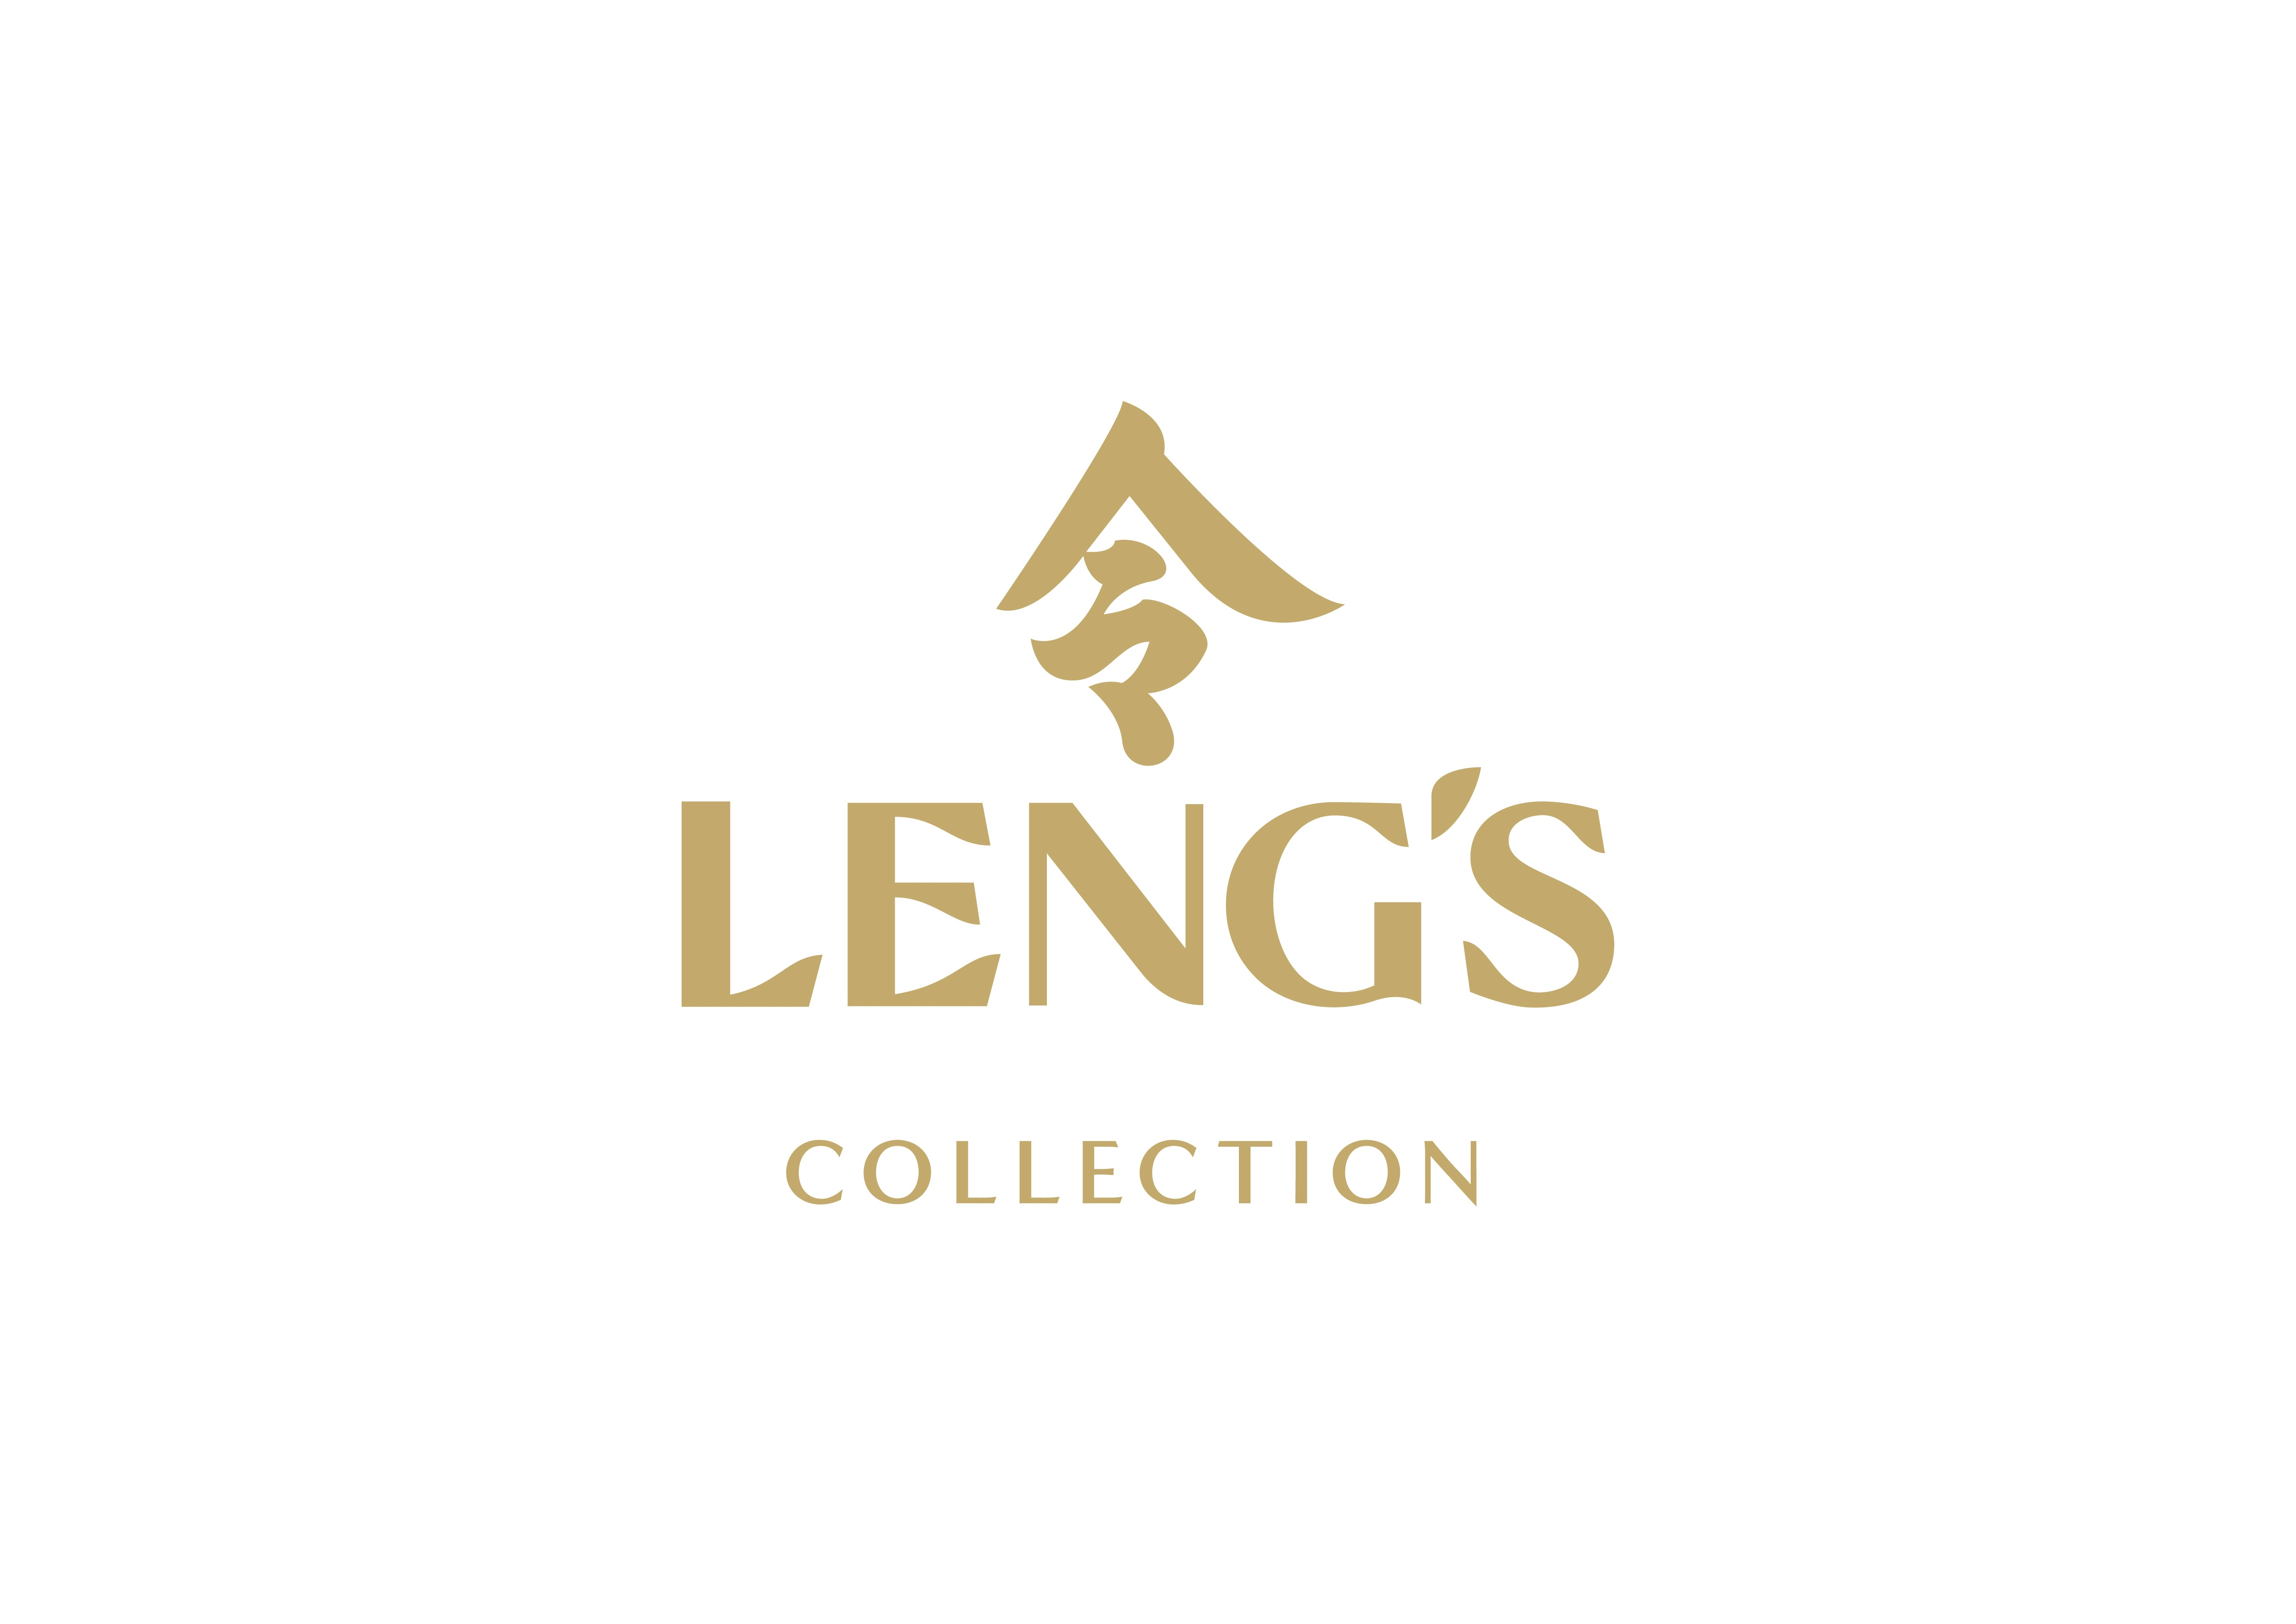 Lengs_Collection_Positive_Logo_RGB_AW_HR